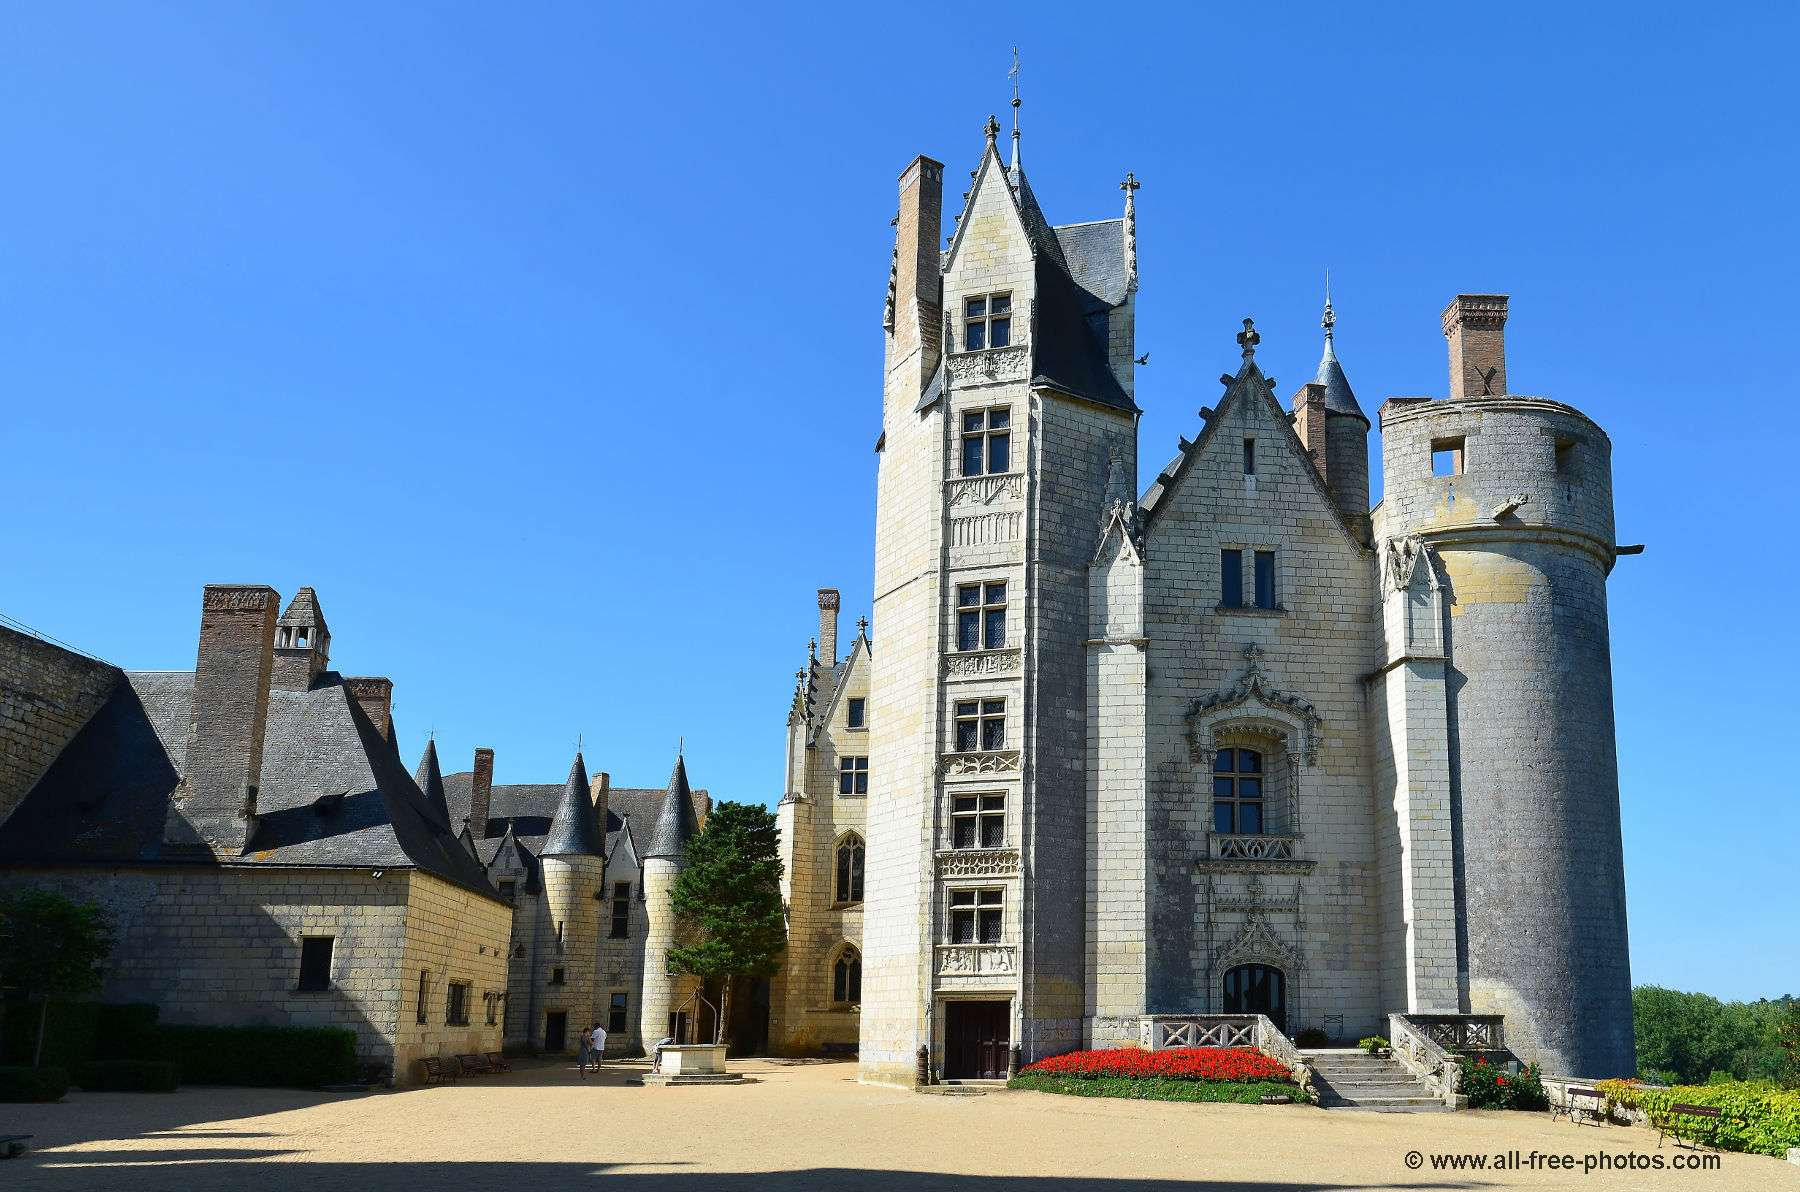 Castle of Montreuil-Bellay